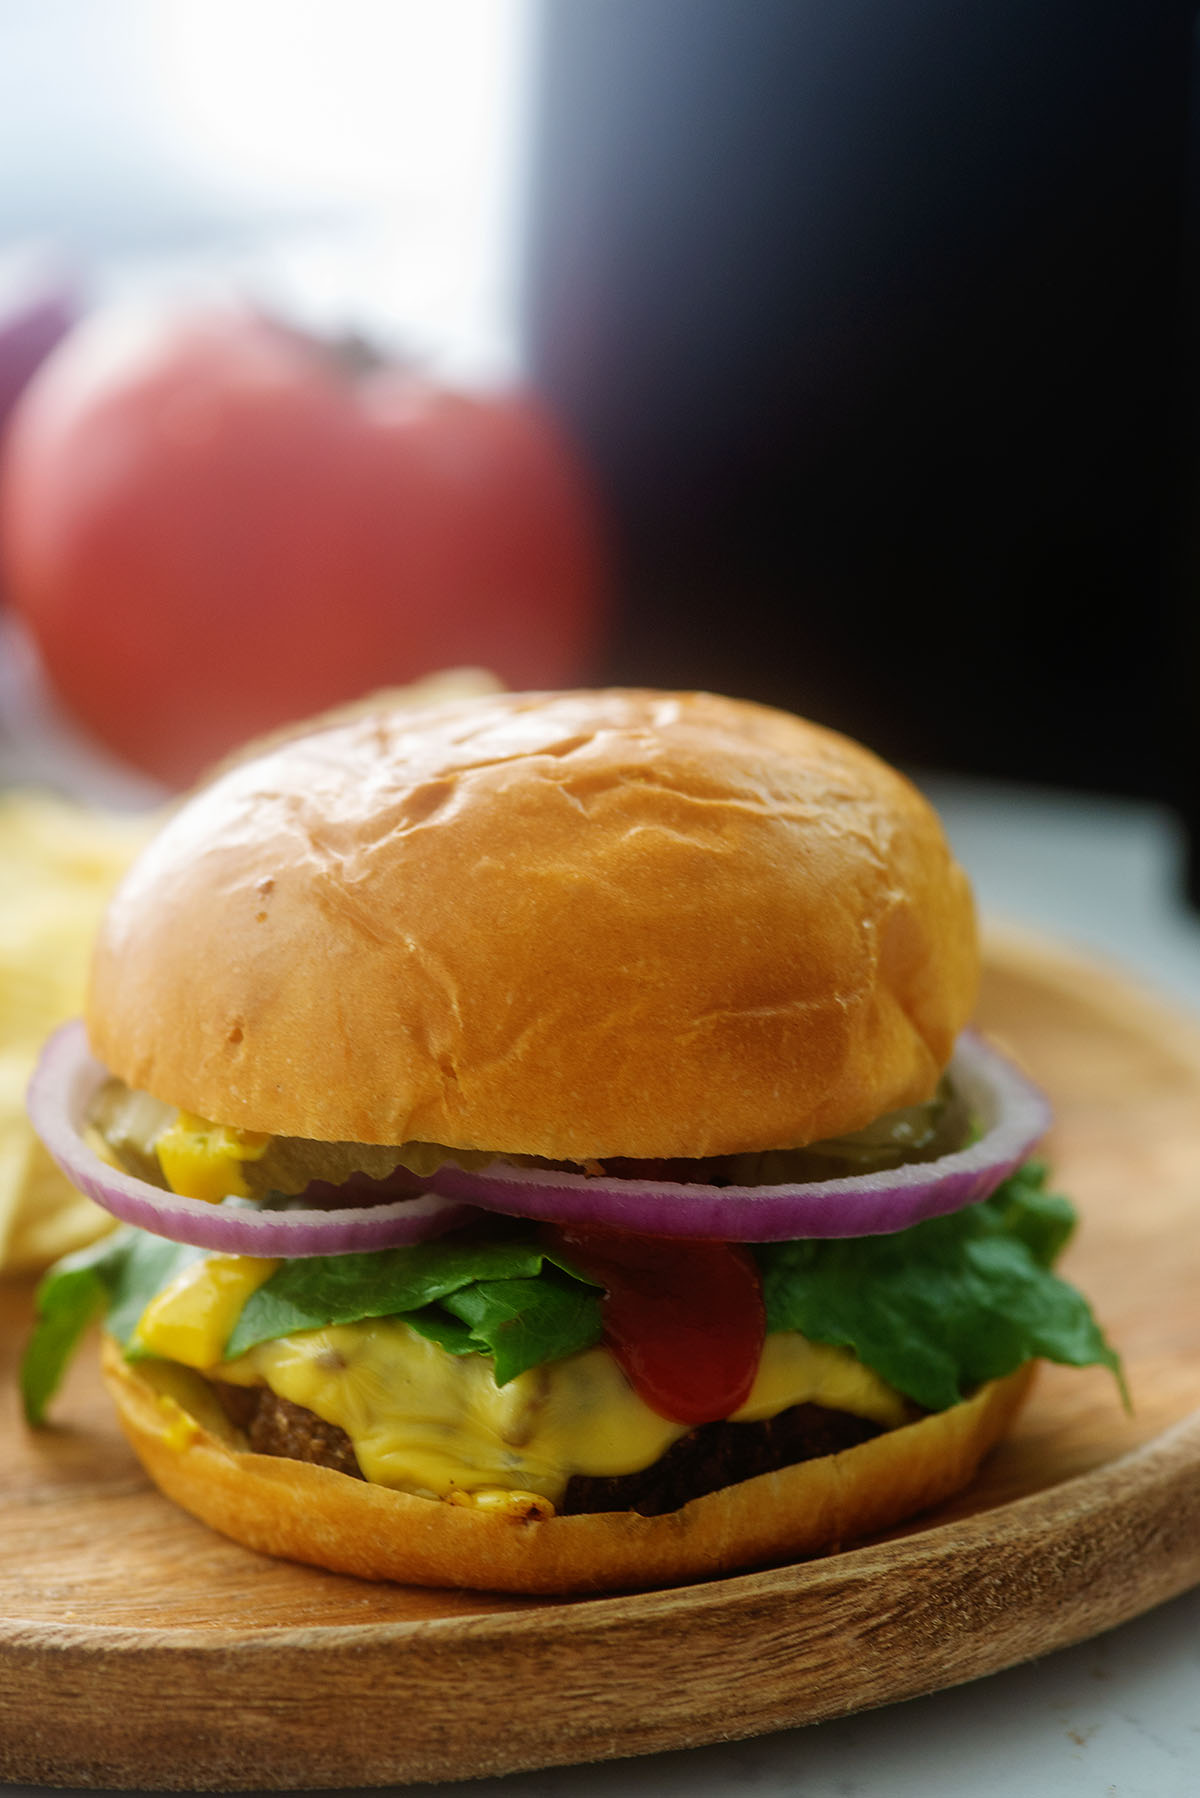 Close up of a cheeseburger with toppings.